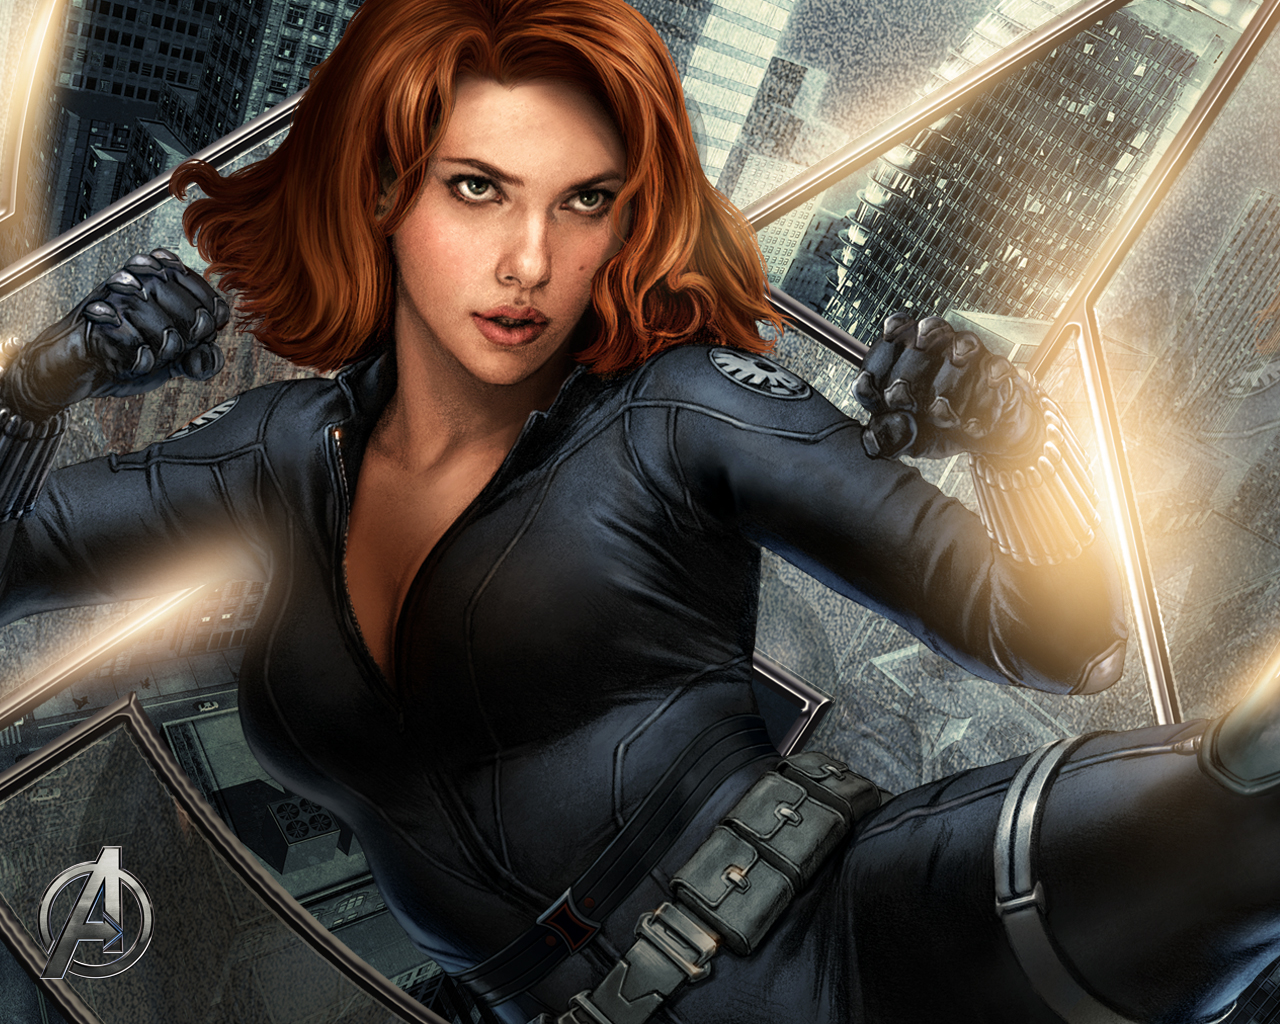 read201104marvels the avengersavengers wallpaper 2 black widow 1280x1024